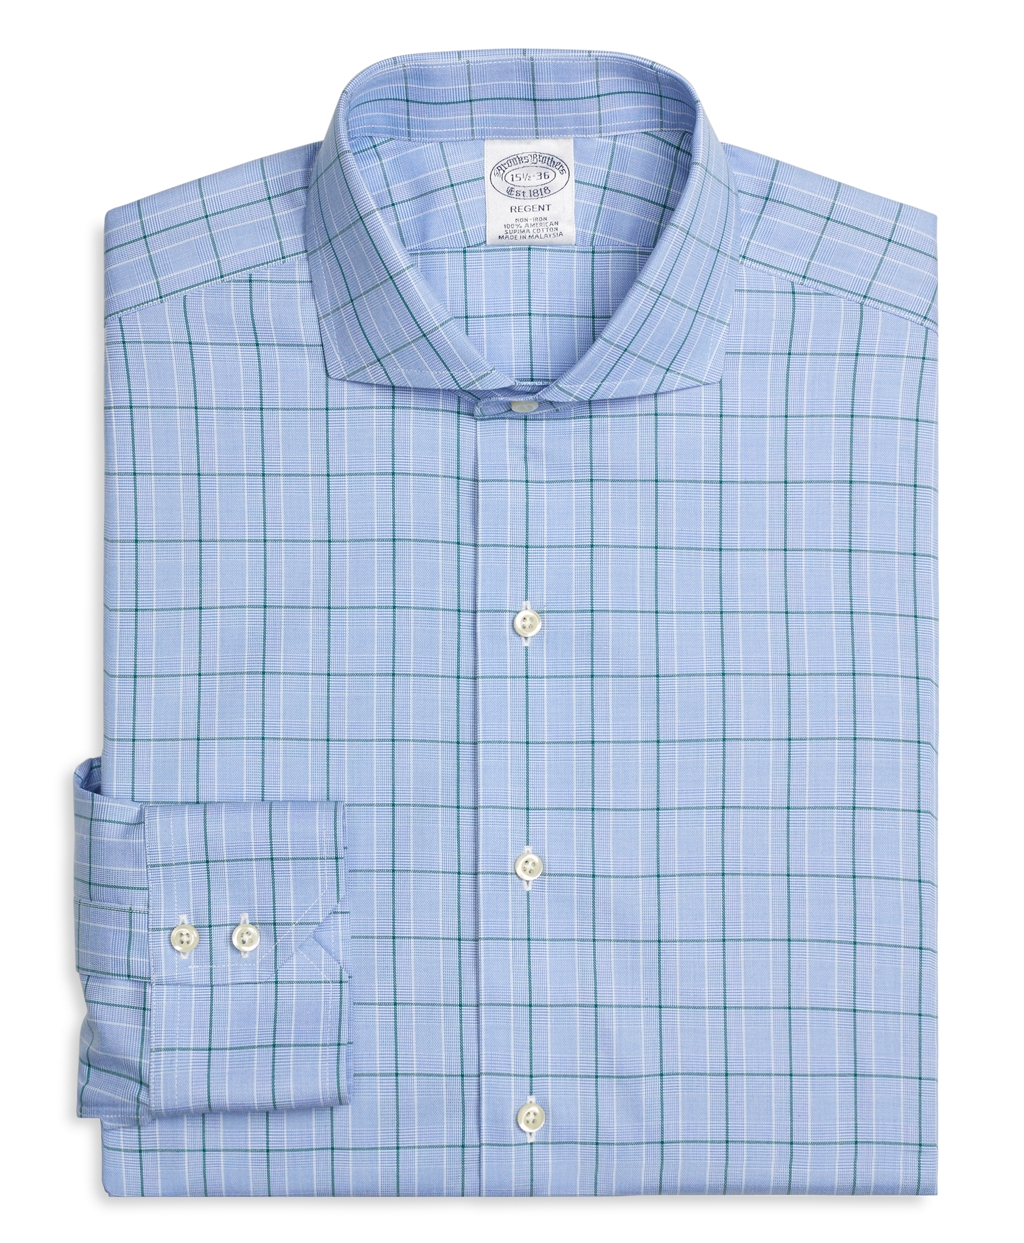 Lyst brooks brothers non iron regent fit glen plaid for Brooks brothers dress shirt fit